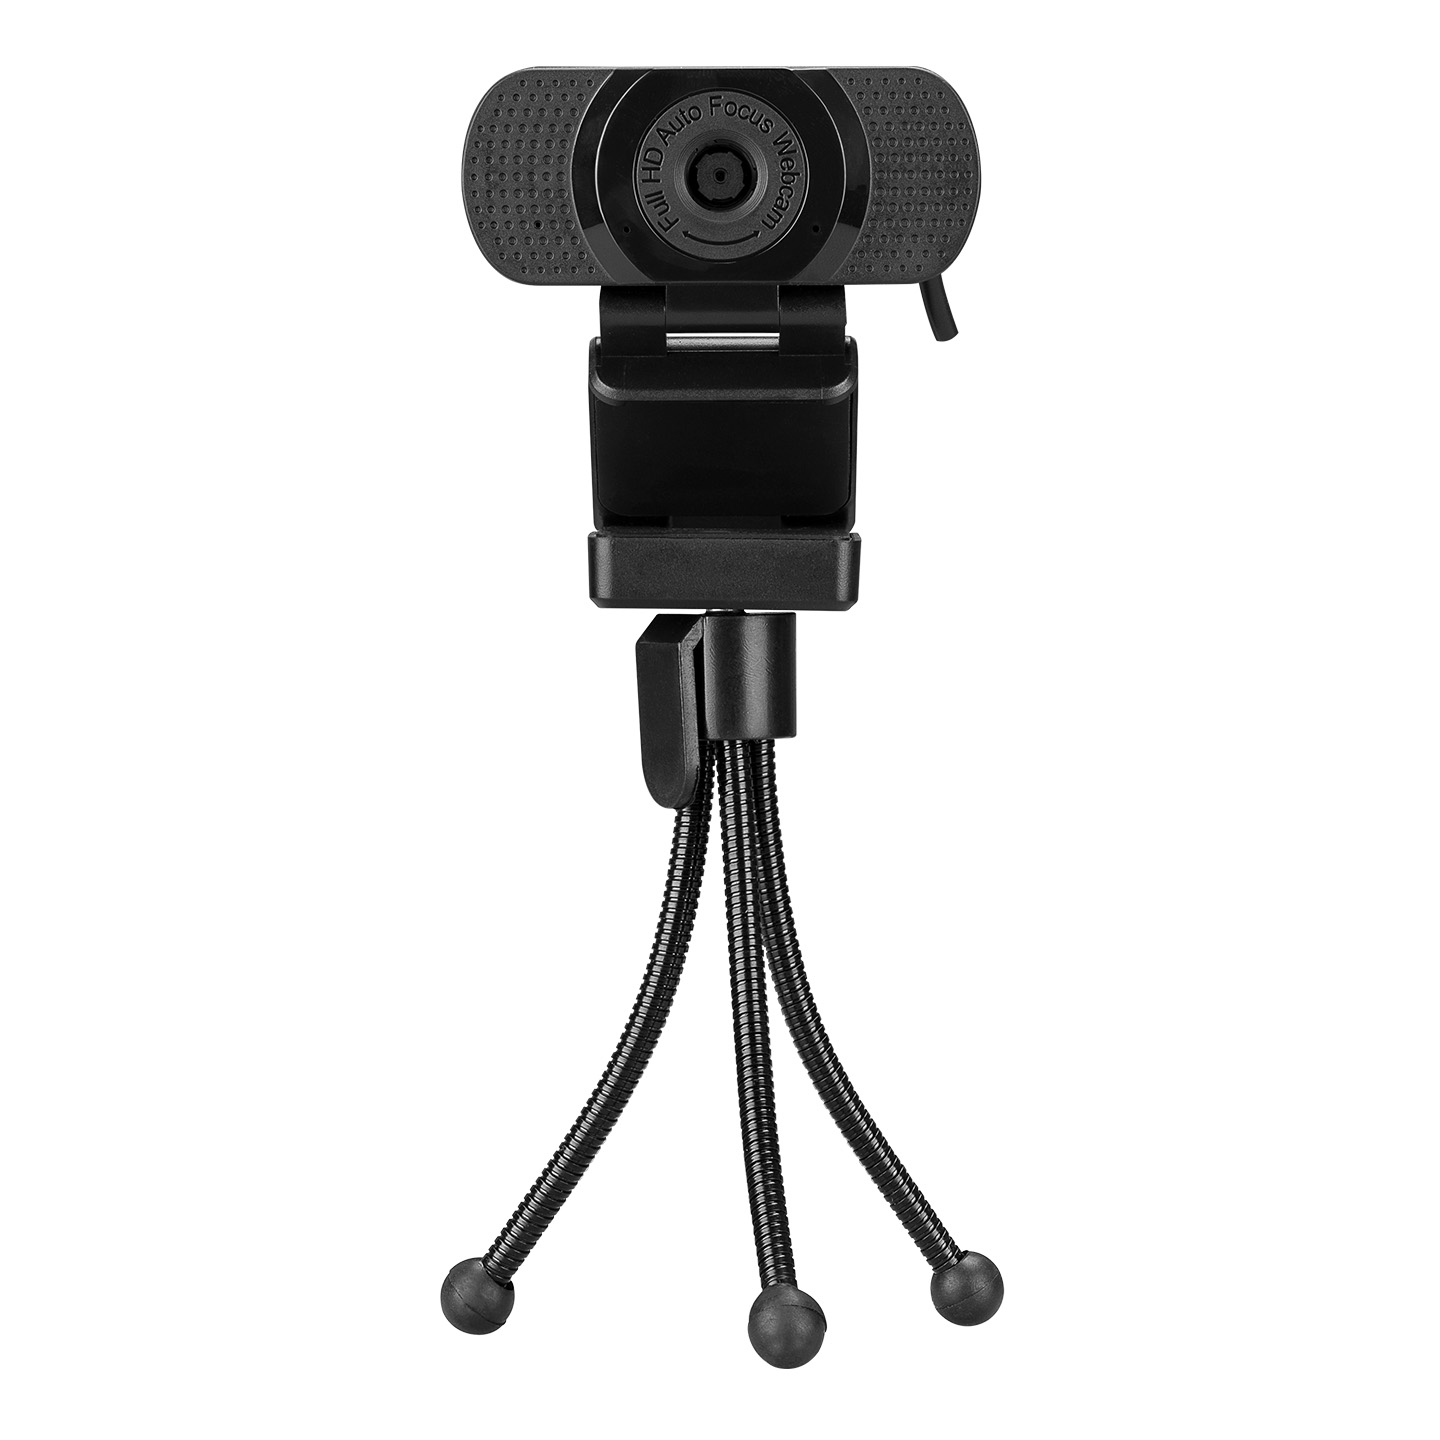 Everest SC-HD02 1080P Full HD Auto Focus Metal Tripod ve Hassas Dahili Mikrofonlu Webcam Usb Pc Kamera